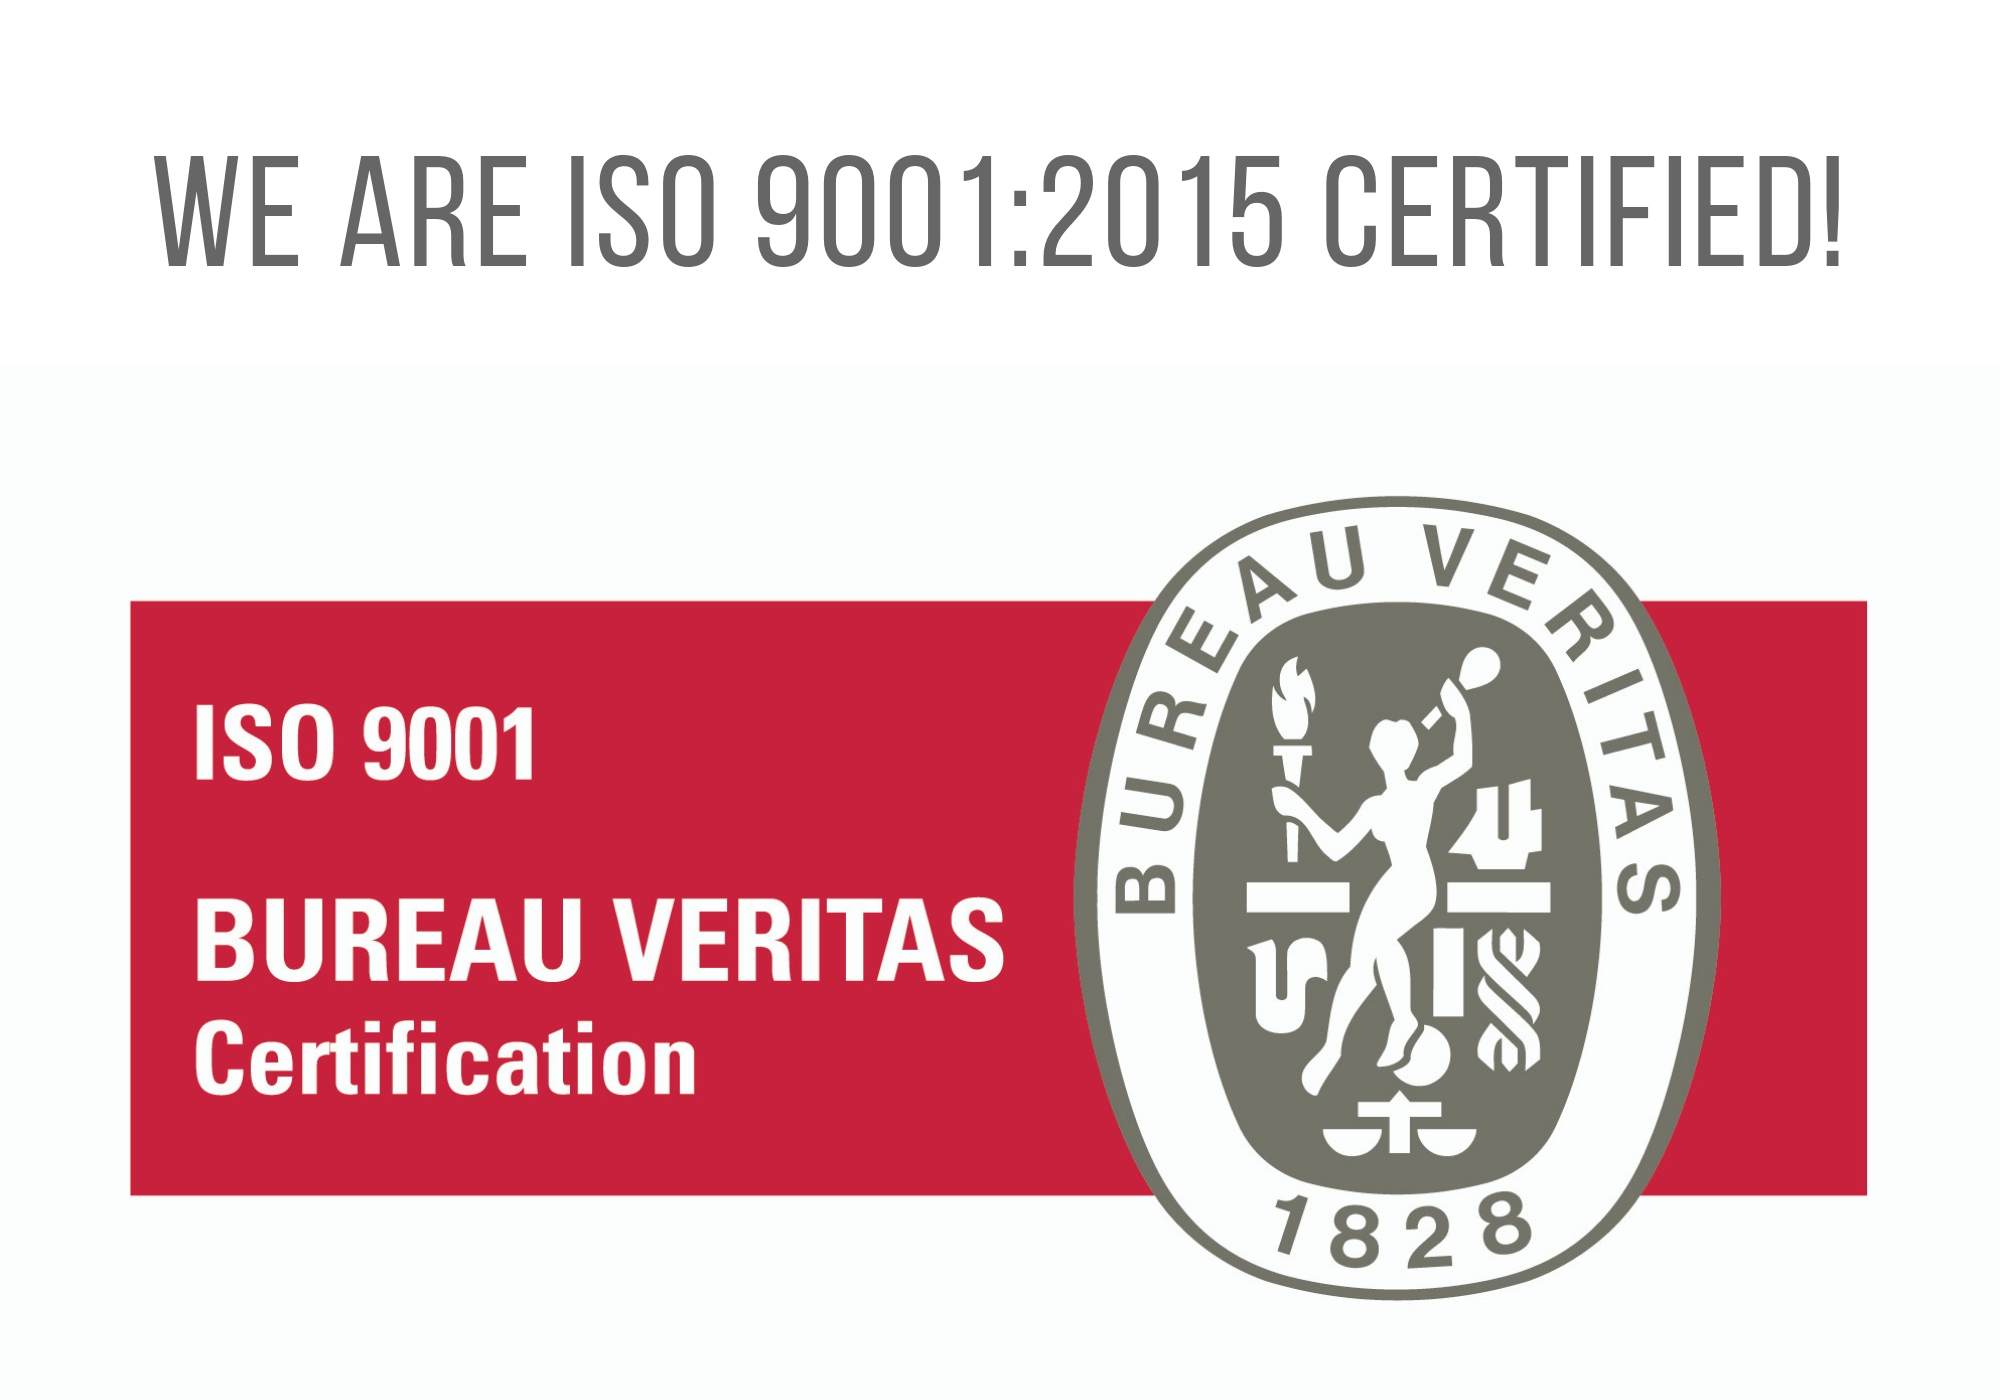 We are ISO 9001:2015 certified!